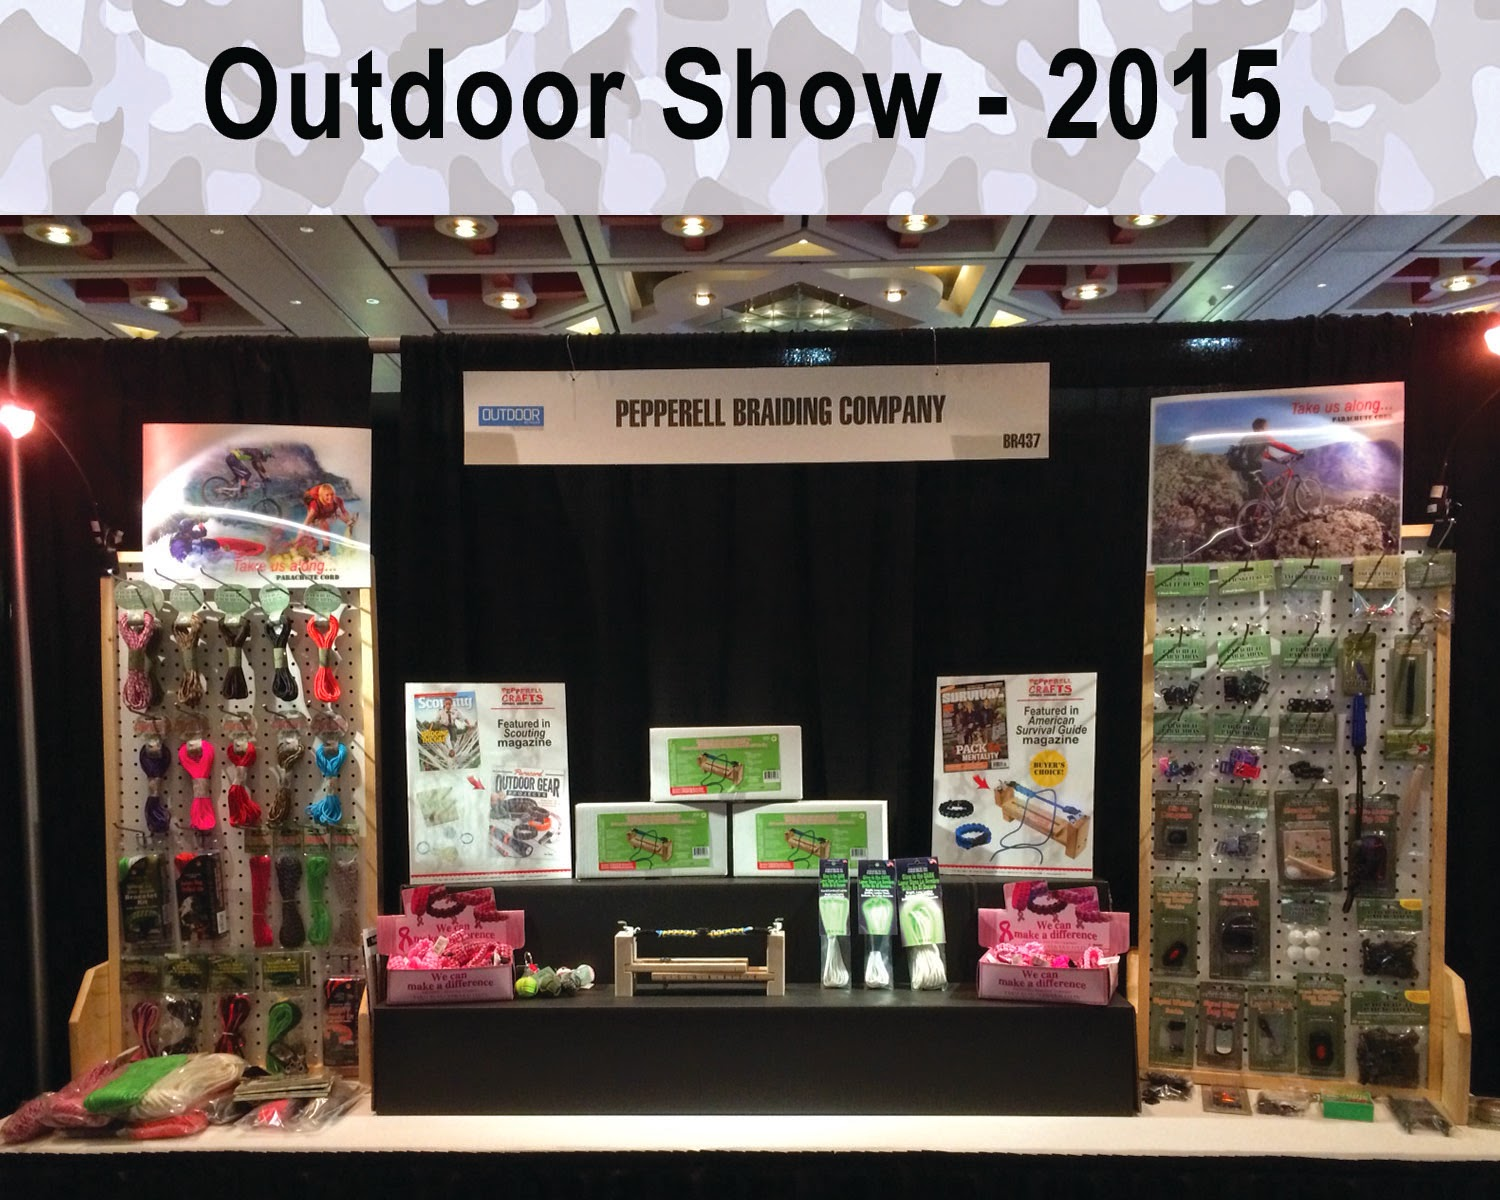 Visit Pepperell Braiding Co. at the Outdoor Show - Booth BR437